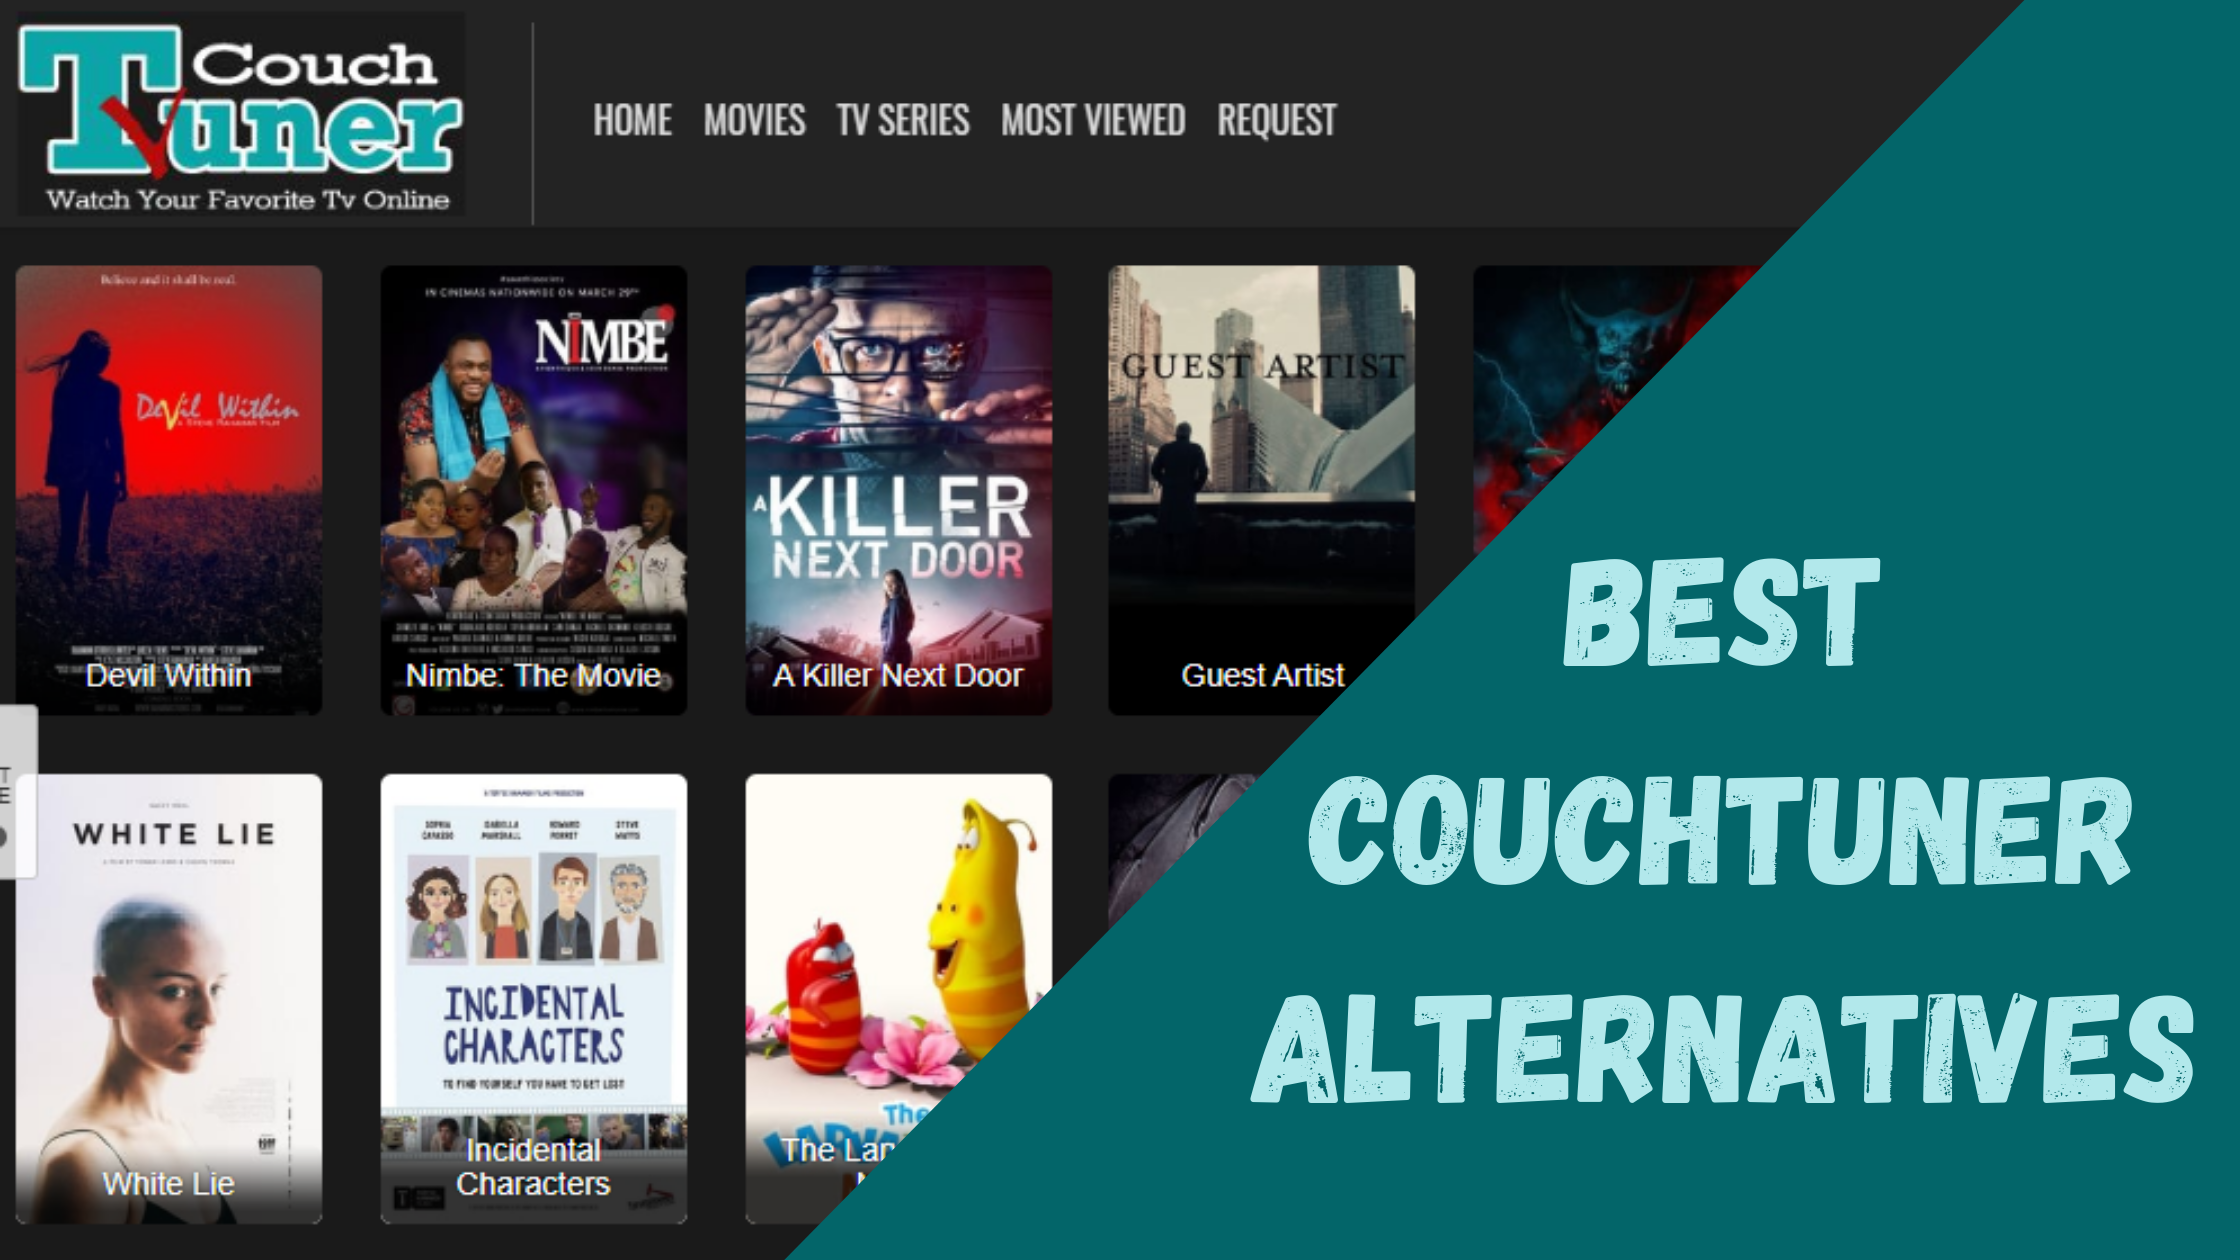 Top 10 Best Alternatives To Couchtuner In 2020 My Tech Blog